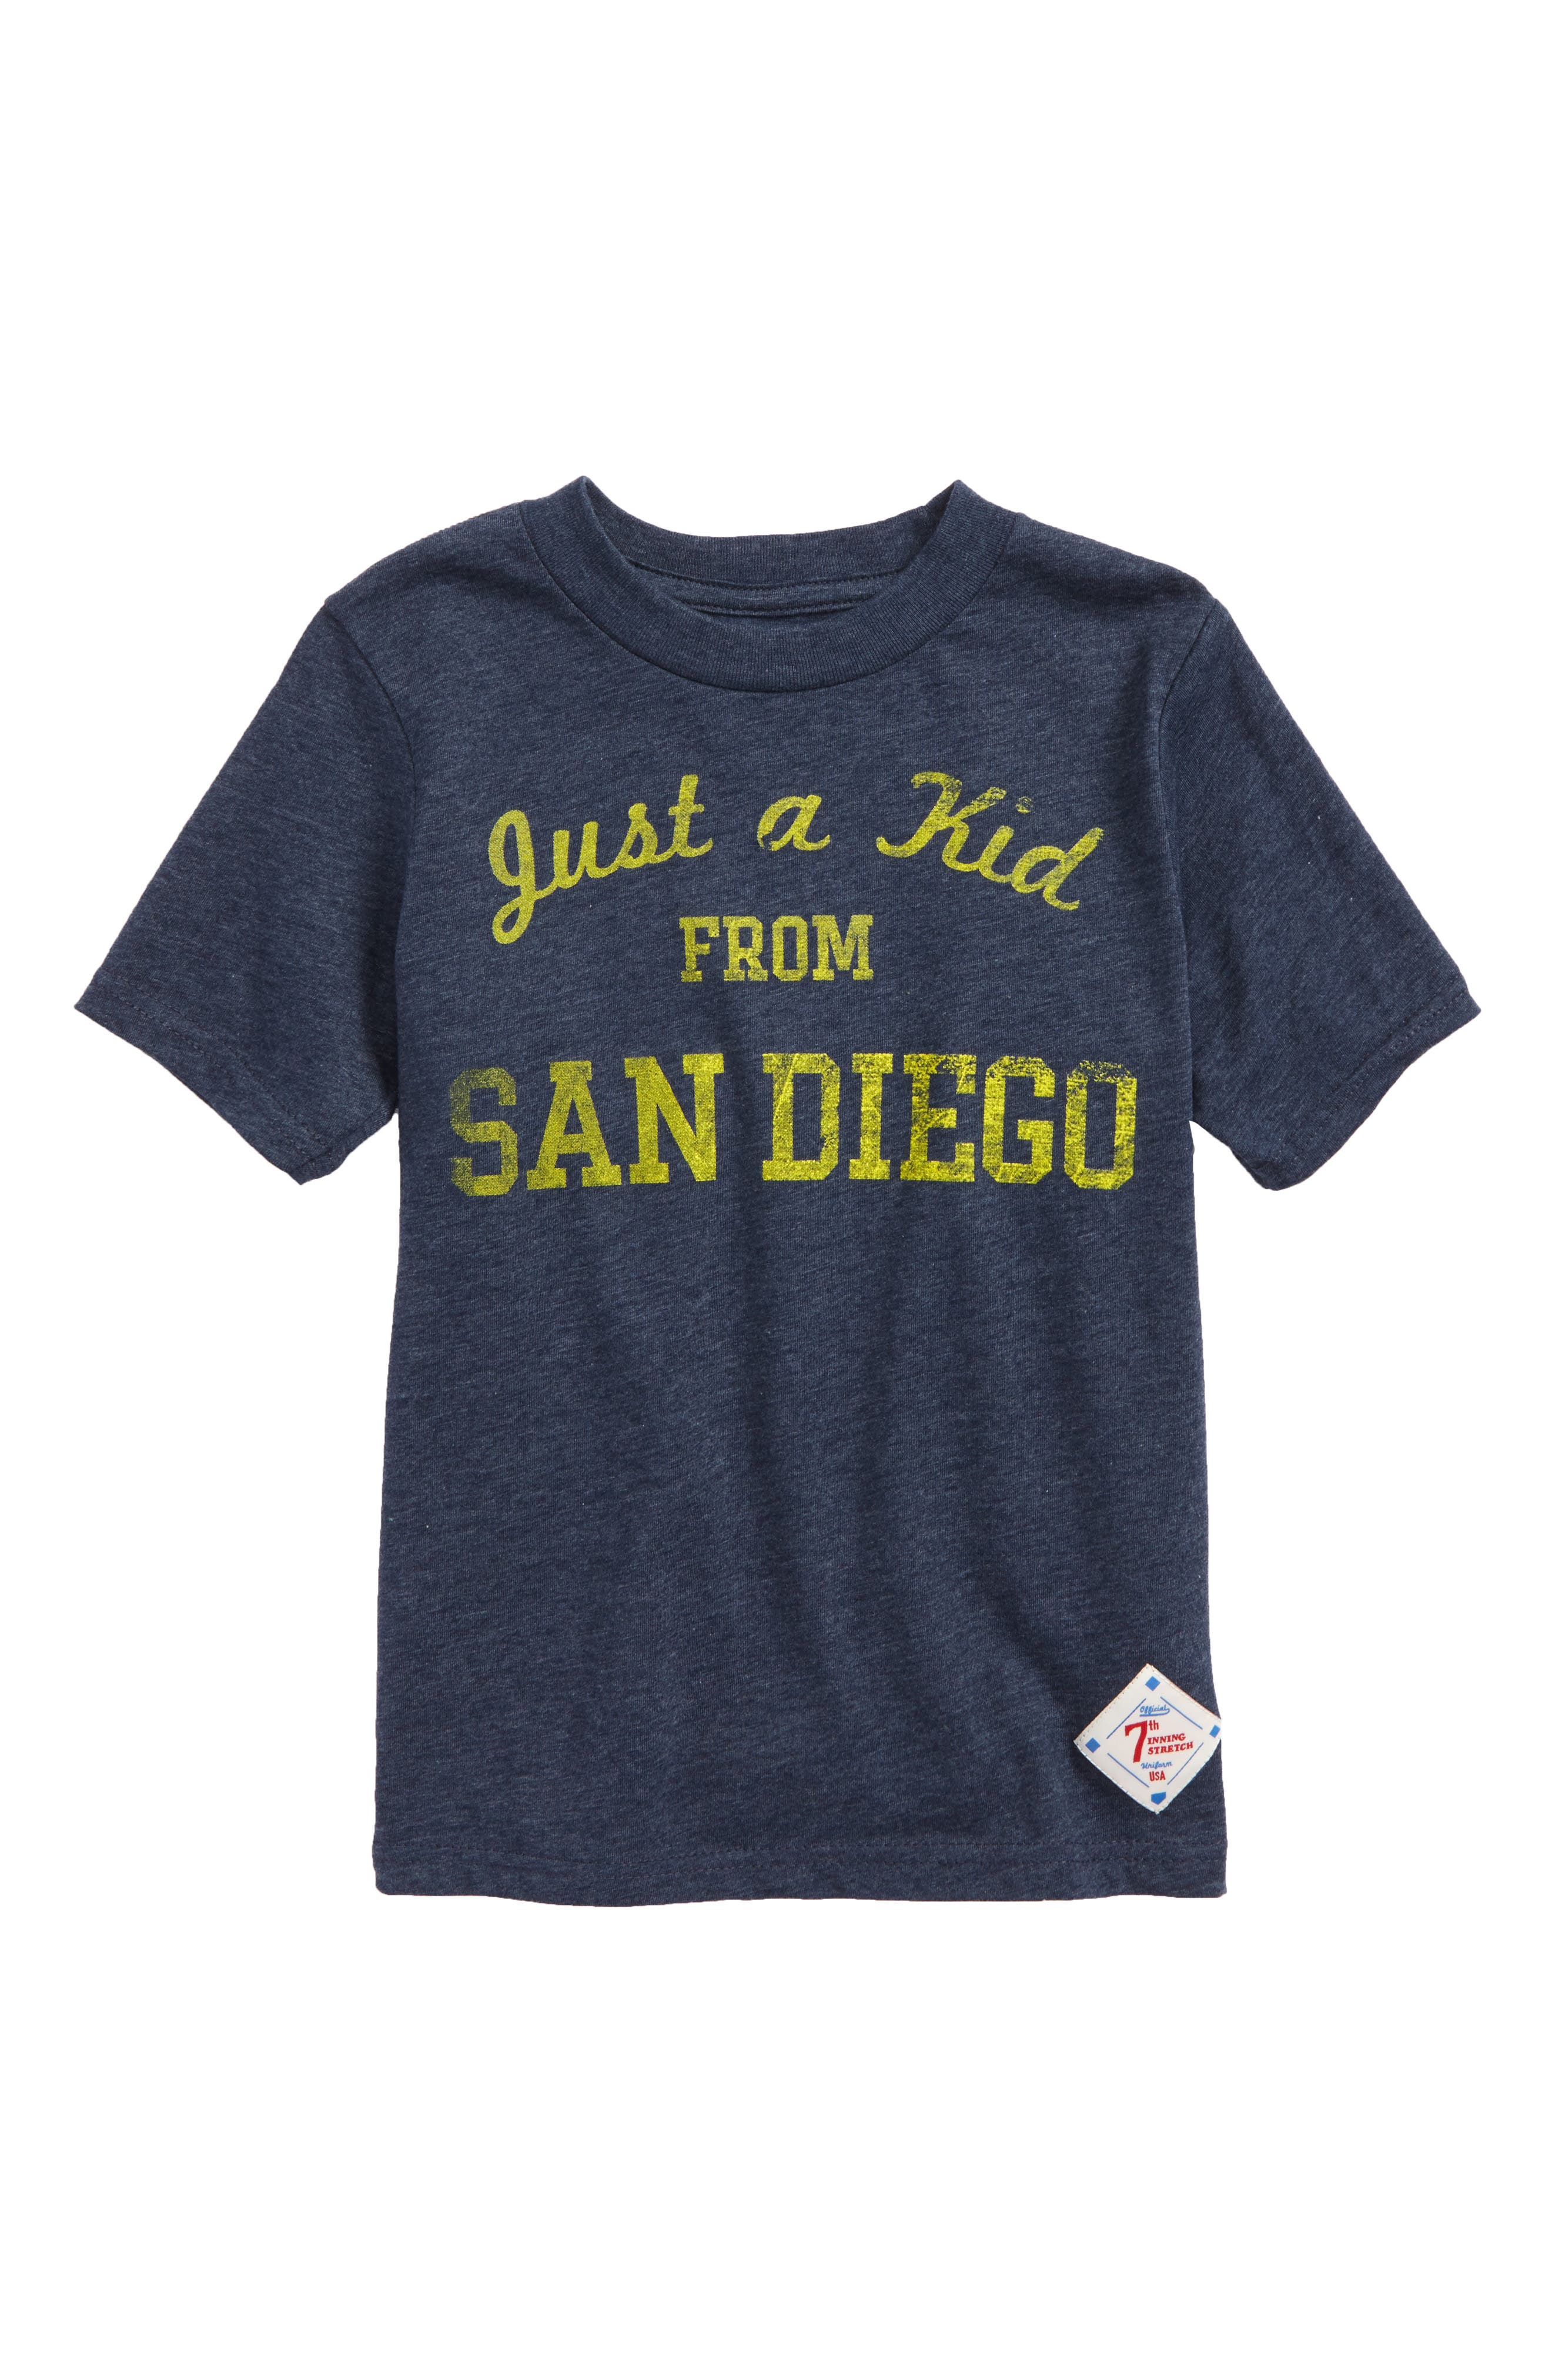 Just a Kid from San Diego Graphic T-Shirt,                             Main thumbnail 1, color,                             Navy/ Gold